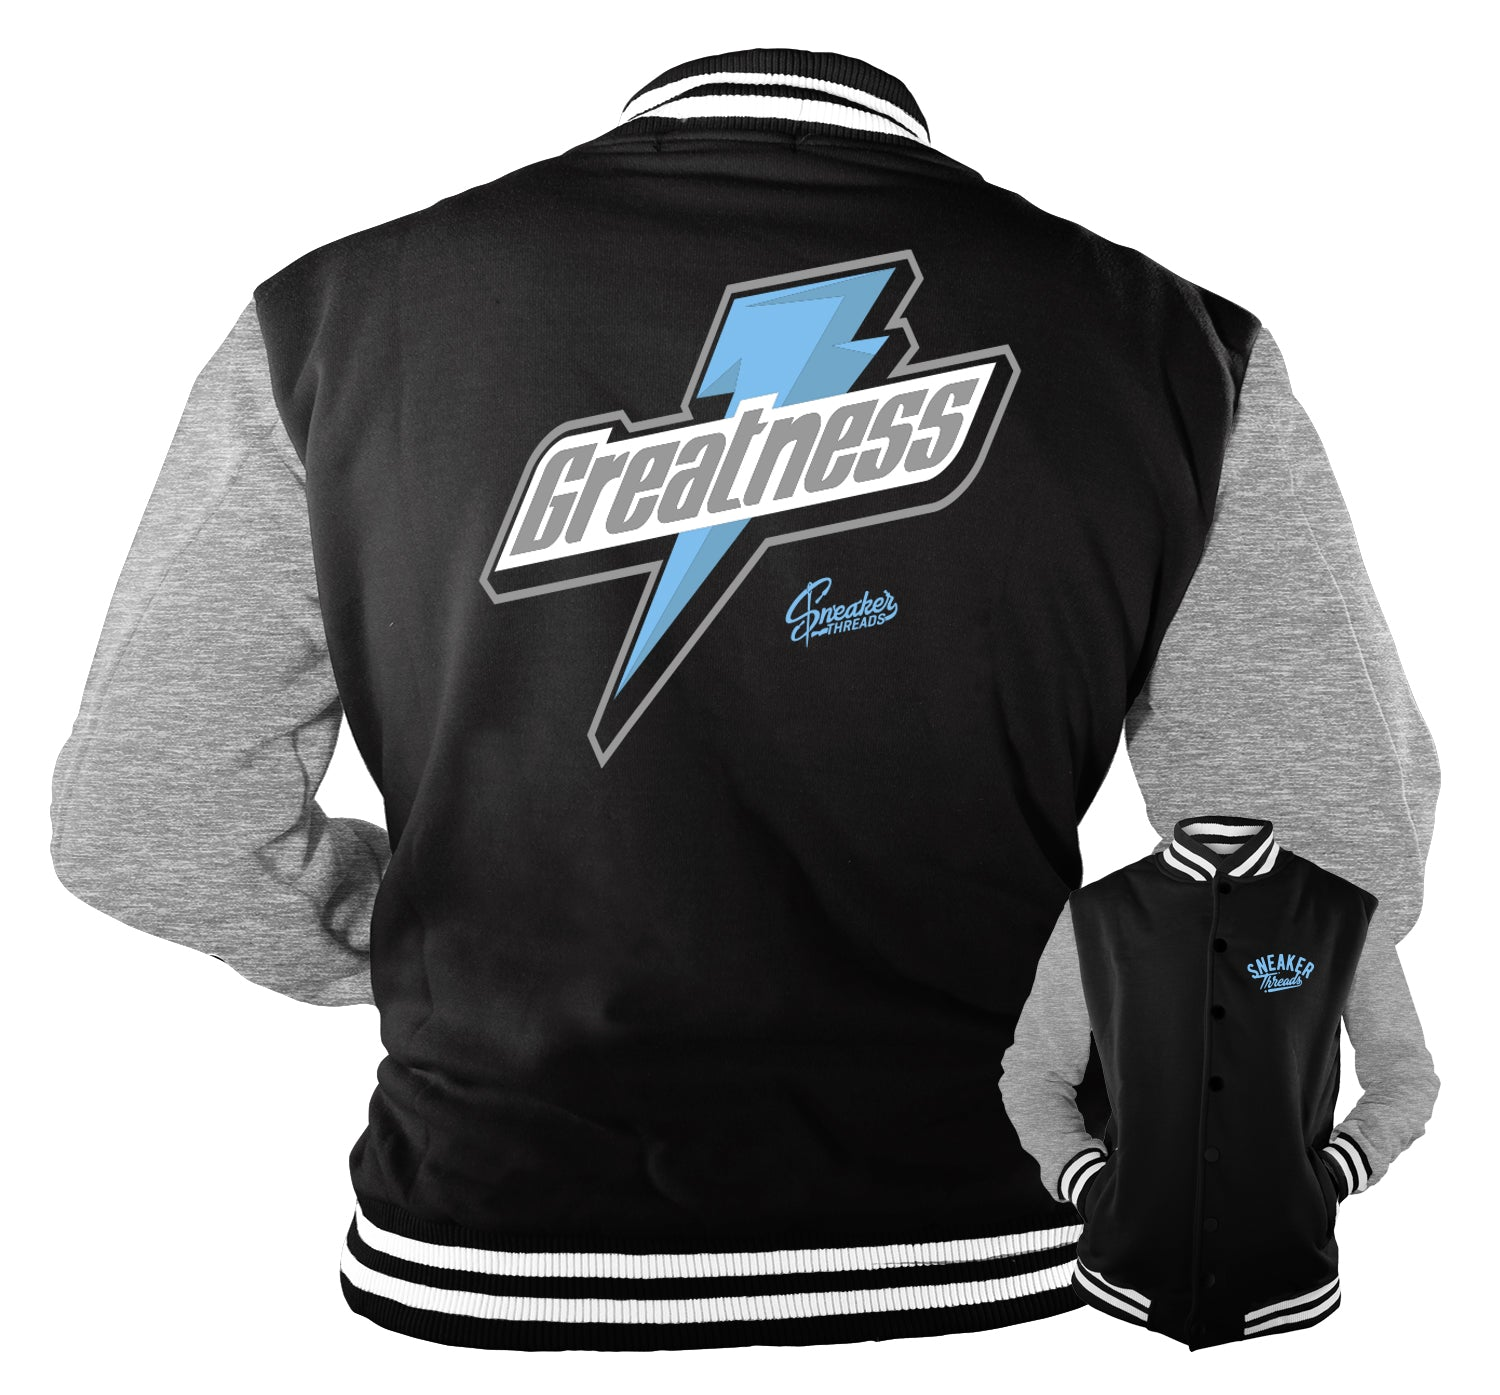 Jacket designed to match the Jordan 9 university blue sneakers